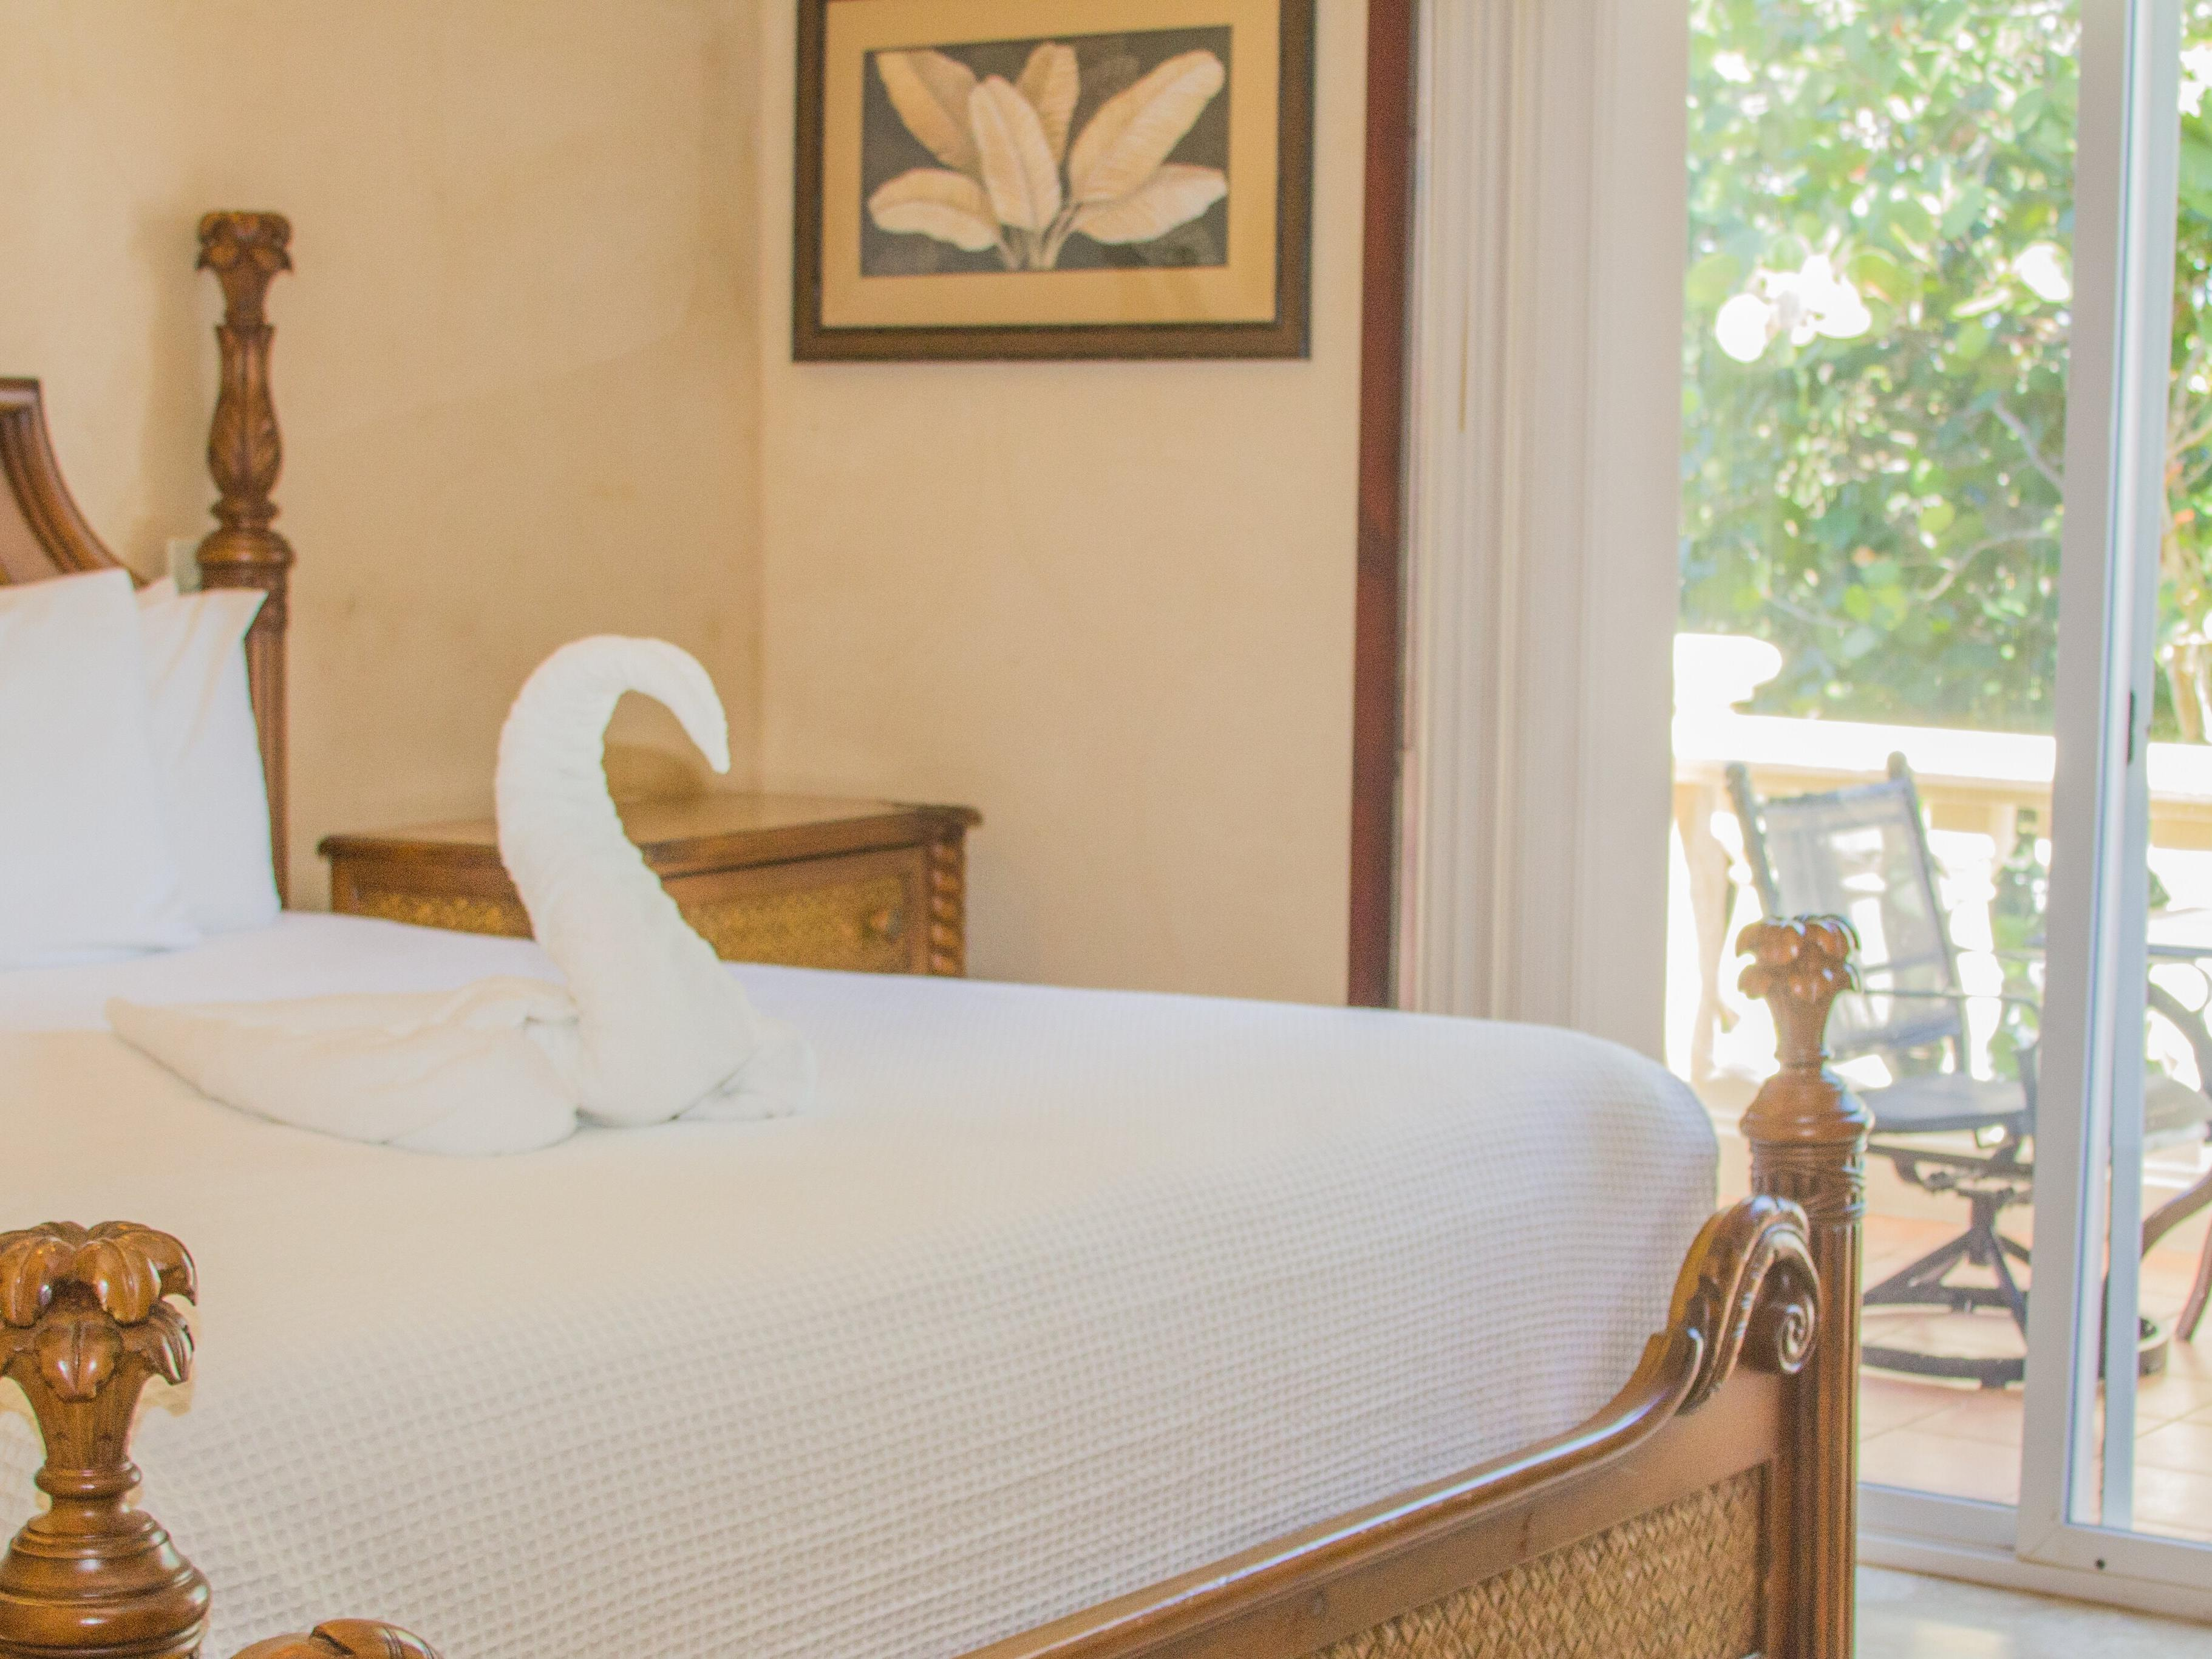 room with bed and towel folden into swan